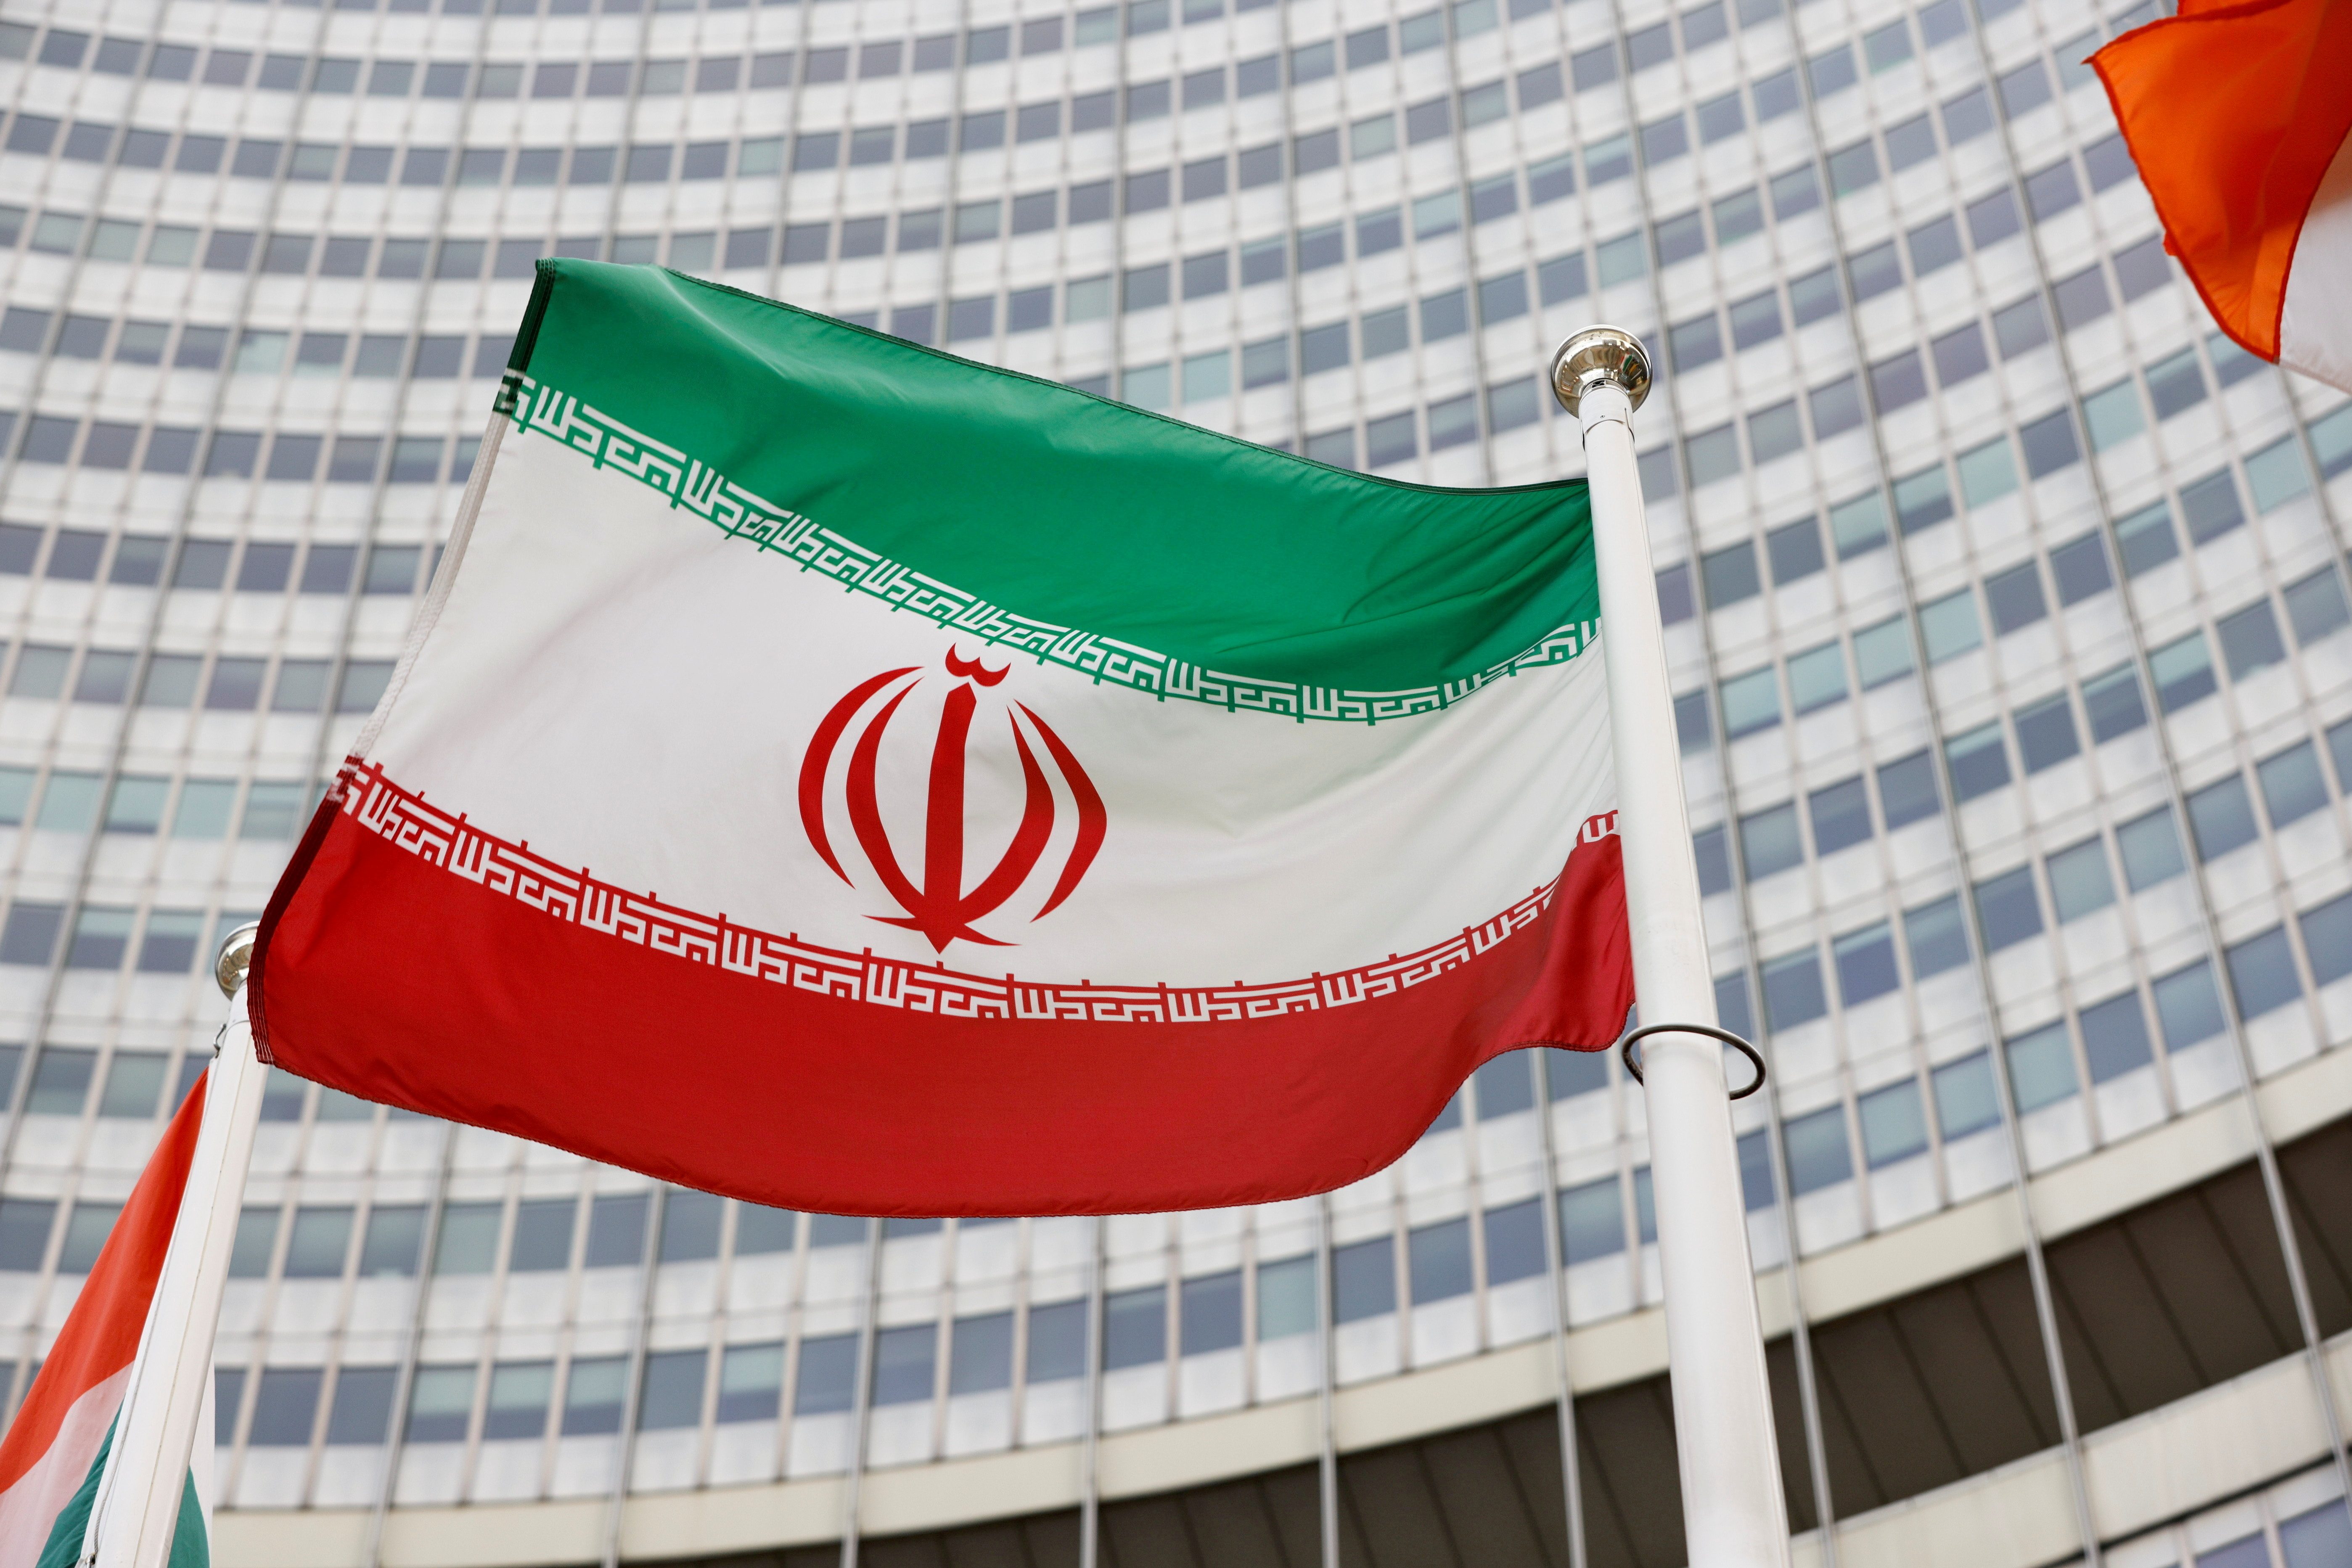 FILE PHOTO: The Iranian flag waves in front of the International Atomic Energy Agency (IAEA) headquarters, amid the coronavirus disease (COVID-19) pandemic, in Vienna, Austria May 23, 2021. REUTERS/Leonhard Foeger/File Photo